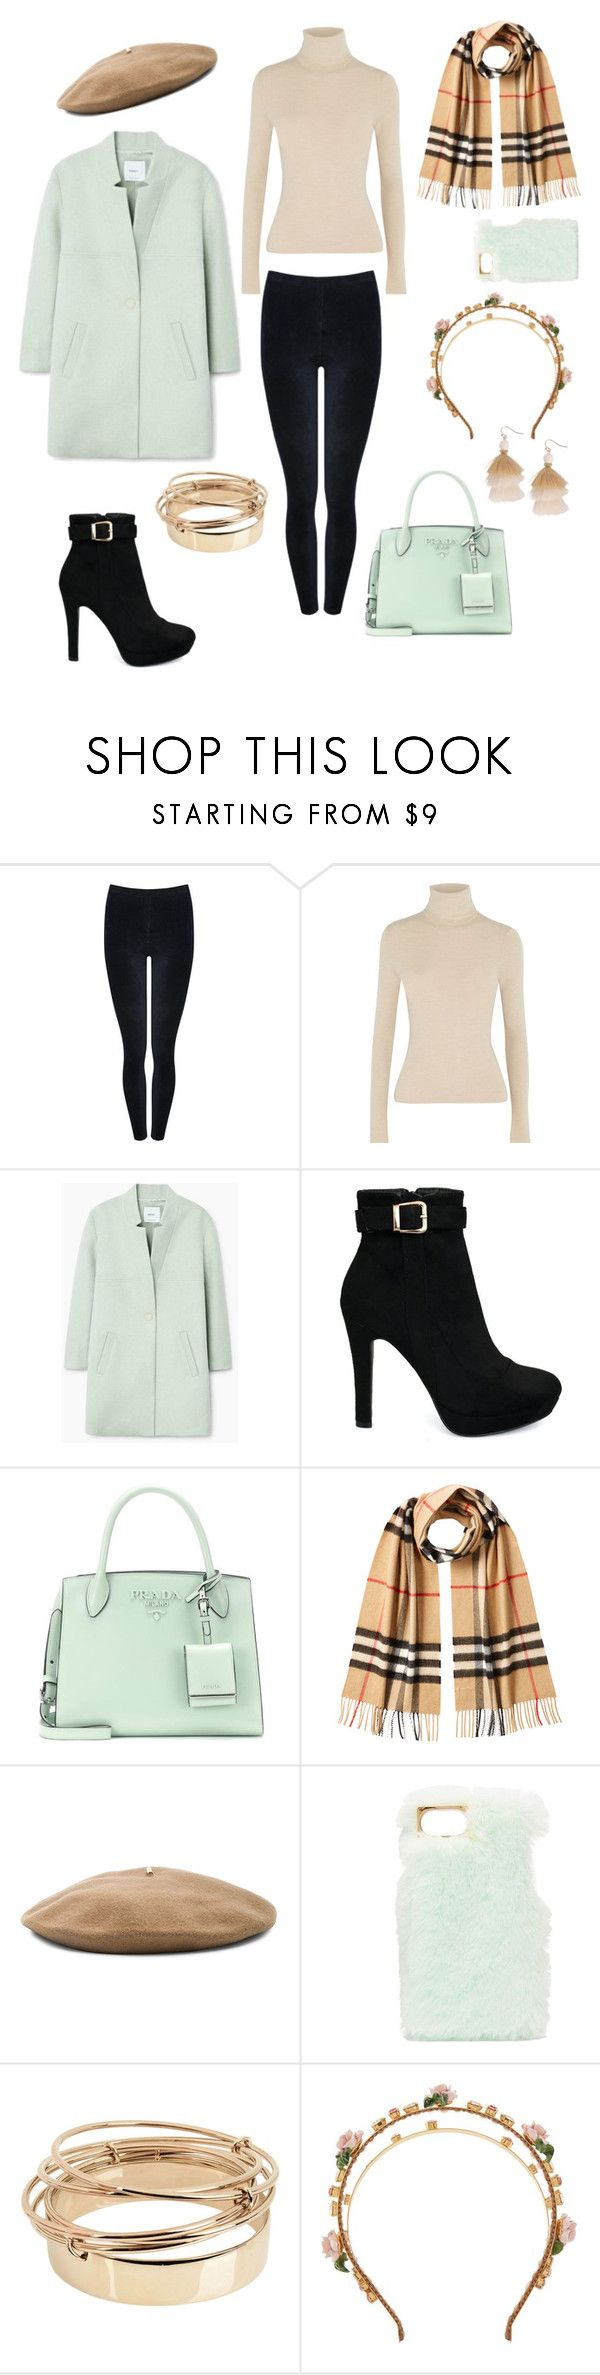 """""""Windy weather"""" by lisaachan ❤ liked on Polyvore featuring M&Co, Alice + Olivia, MANGO, Prada, Burberry, Janessa Leone, Charlotte Russe, Valentino, Dolce&Gabbana and Humble Chic"""